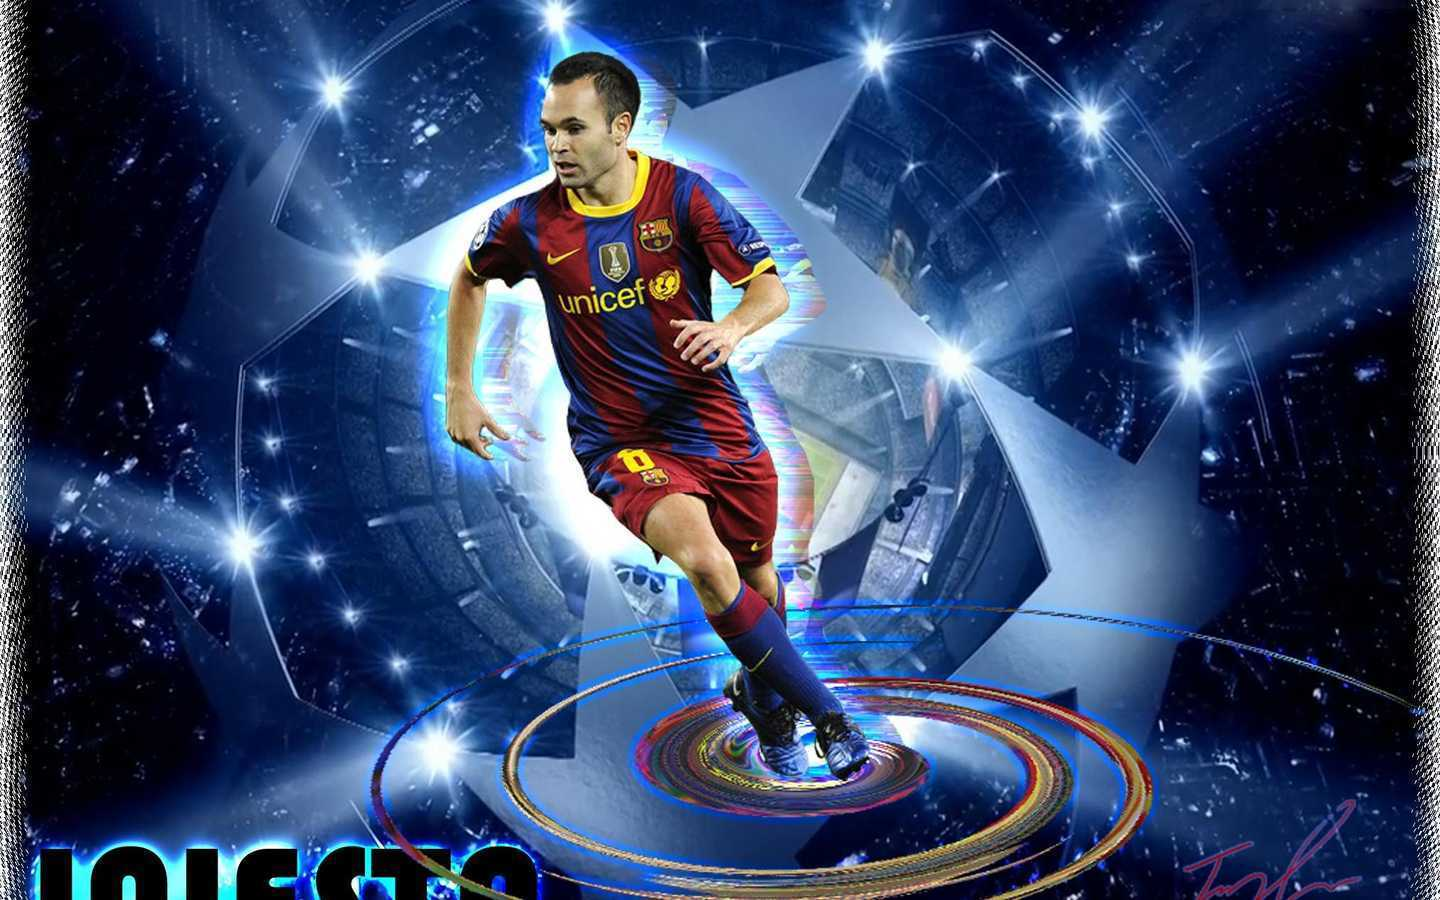 Andres Iniesta wallpapers (17 Wallpapers)